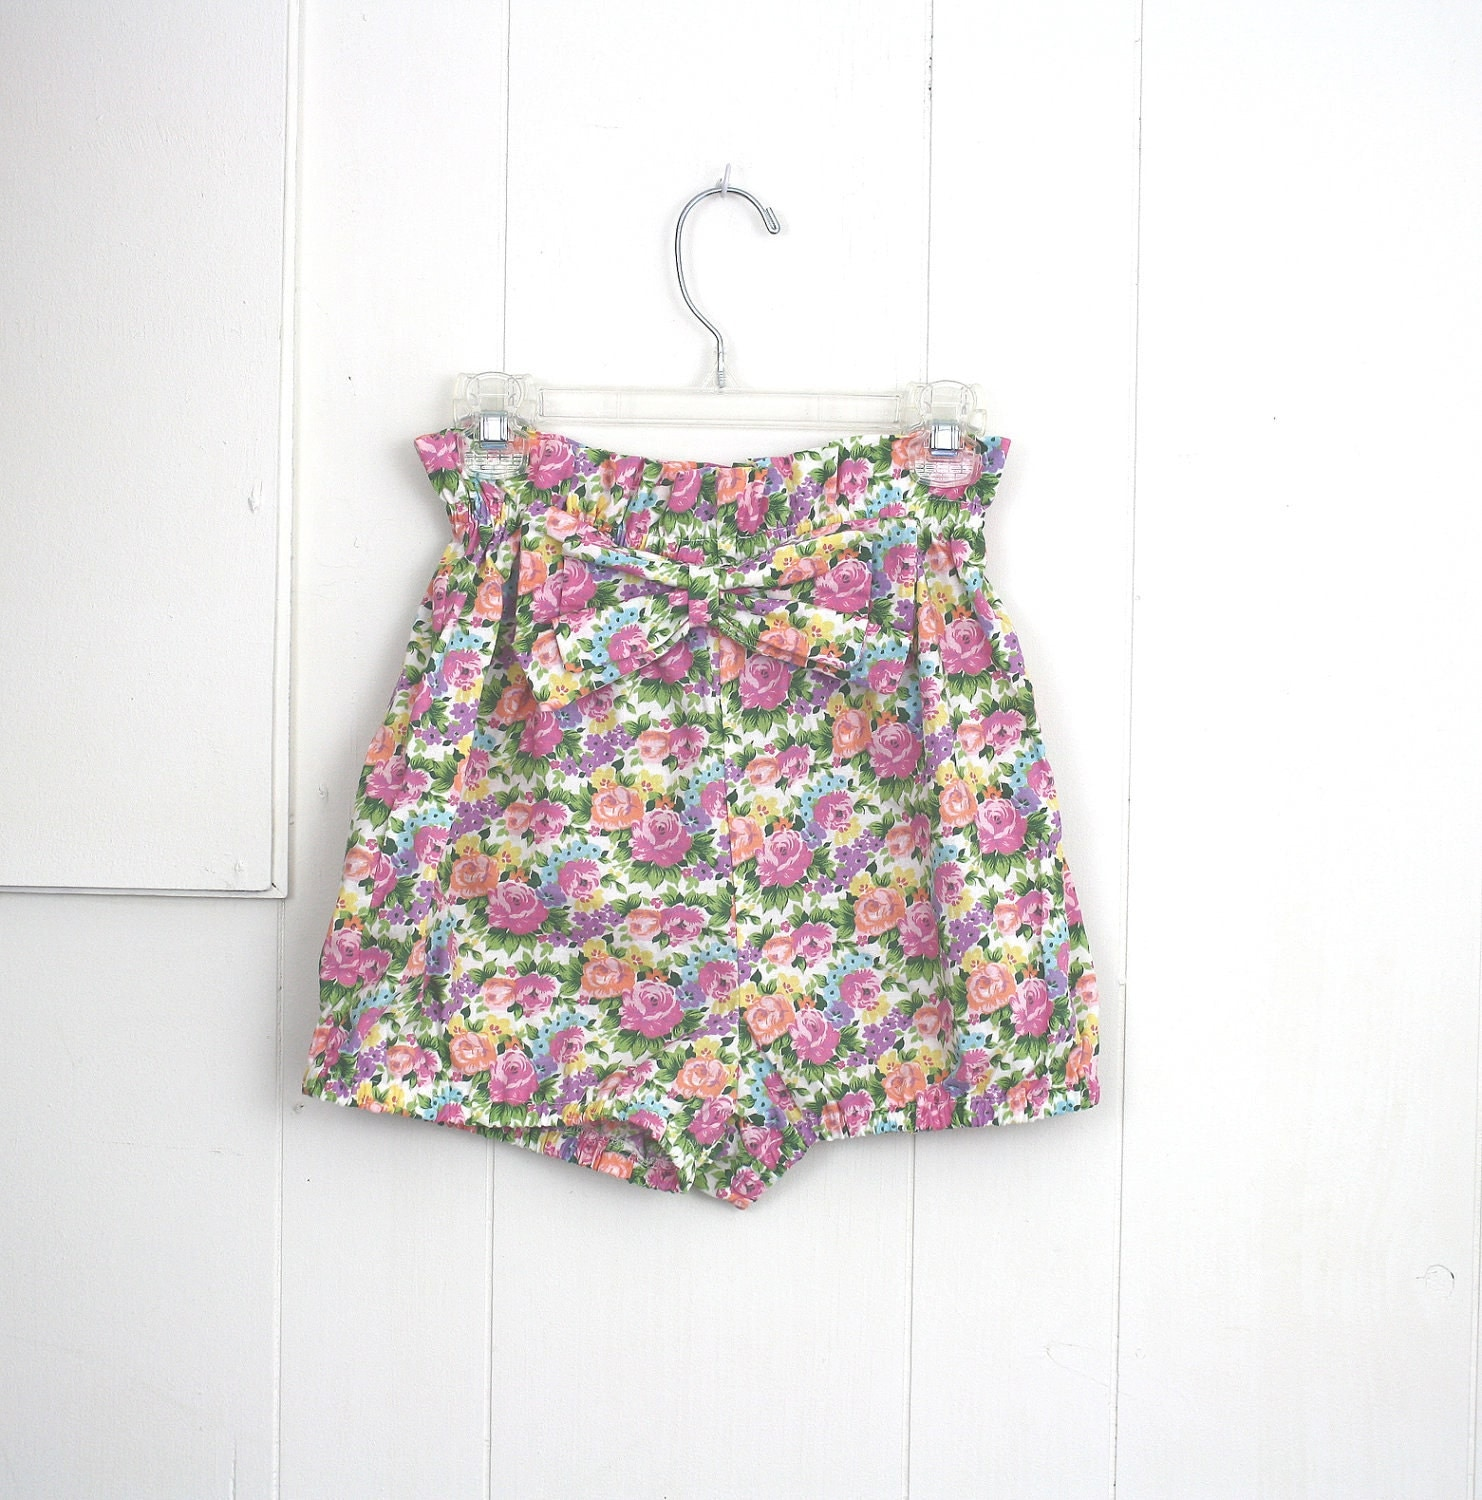 Bloomer Shorts Floral Cotton Summer Beach 50's Inspired xs s - daileedose